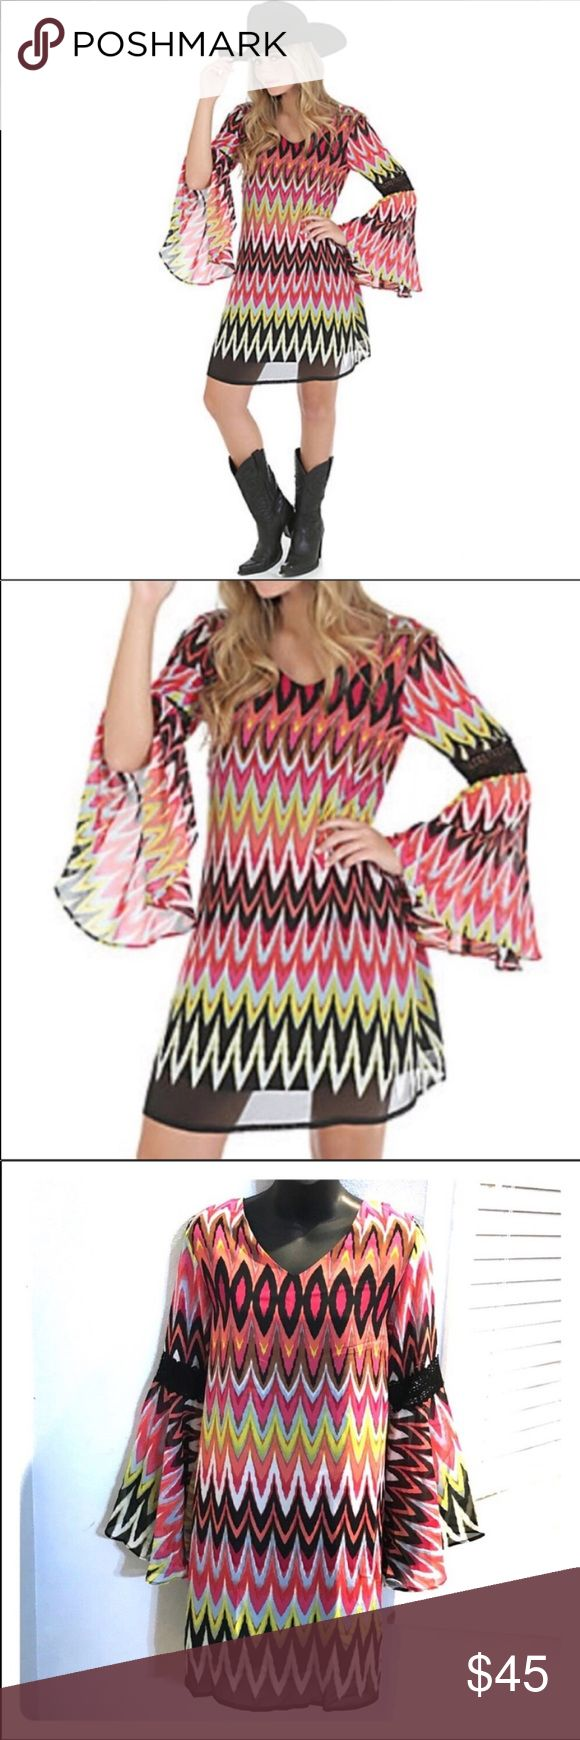 """NWT chevron bell sleeve flowy Wrangler dress M Printed multi color v-neck bell sleeve dress by Wrangler in a size medium. Colors are coral, like green, white, black and blue. New with tags attached. 100% polyester. Dress is lined. Measures approximately 34"""" in length from shoulder to hem and approximately 18.5"""" across from under the arm to the other side making it 37"""" around the chest area. Very roomy, float dress. Have one smaller available also by request. Bundle to save even more on this…"""